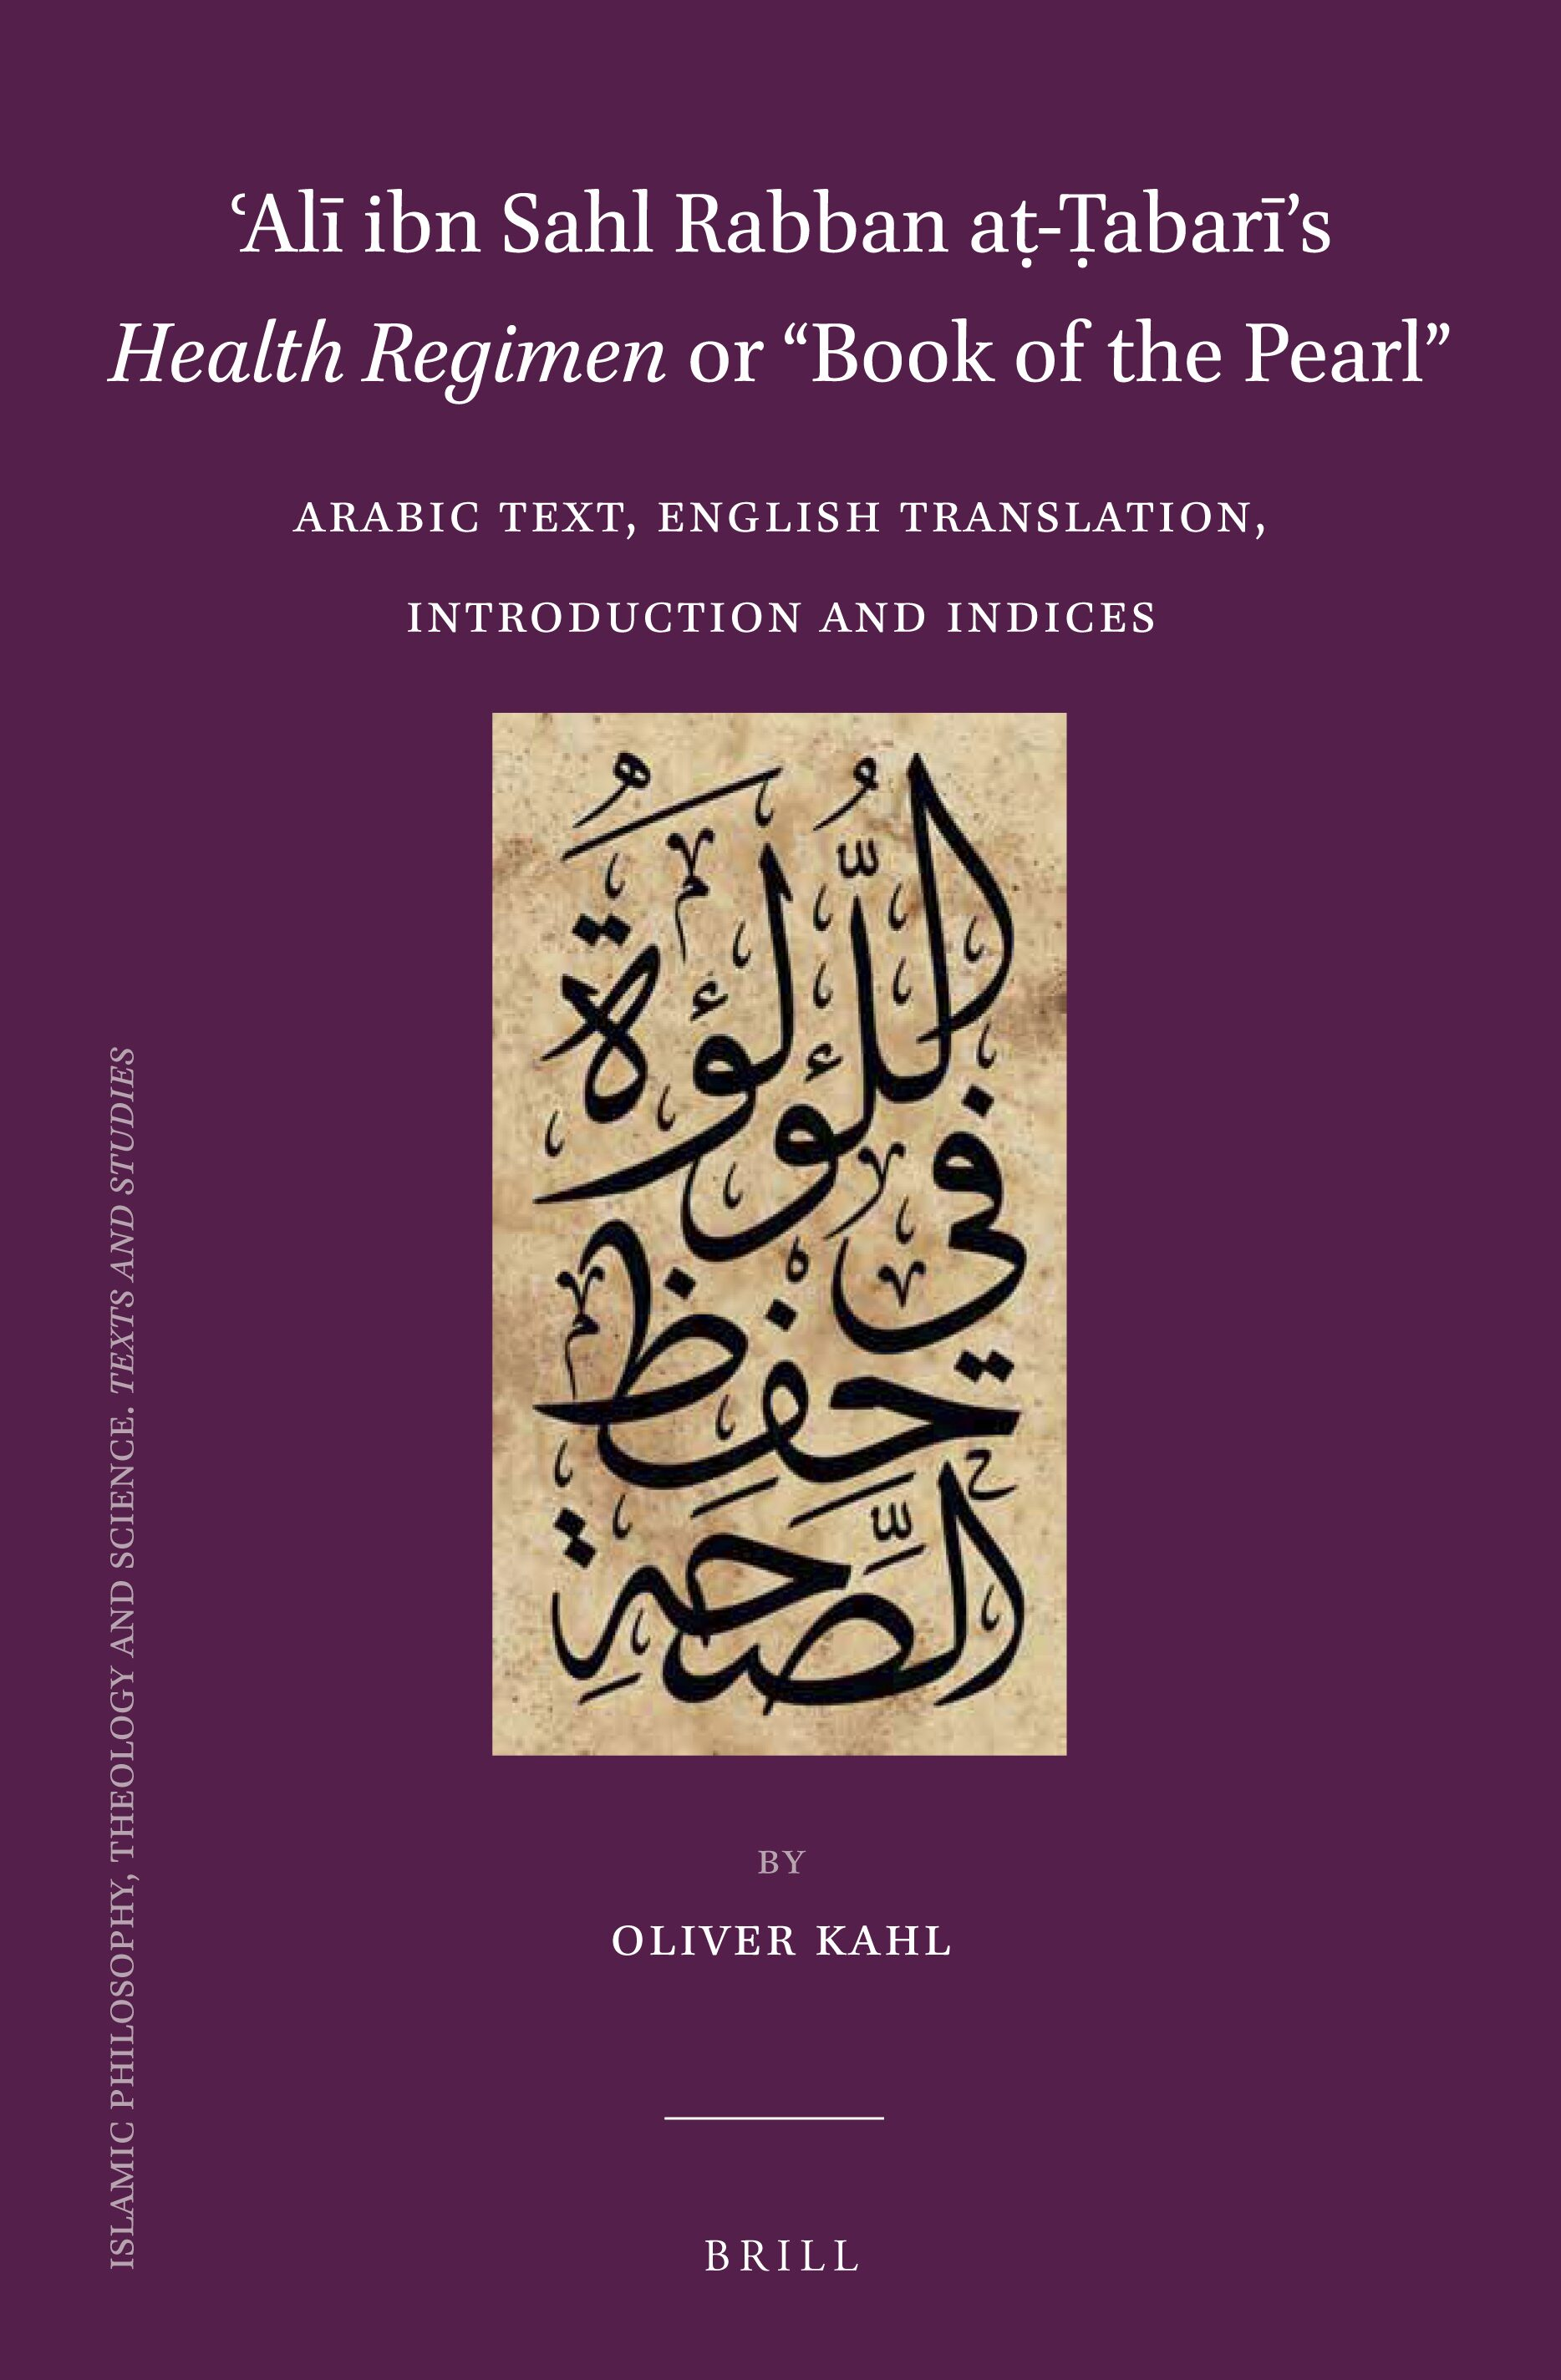 Text And Translation In ʿali Ibn Sahl Rabban Aṭ ṭabari S Health Regimen Or Book Of The Pearl